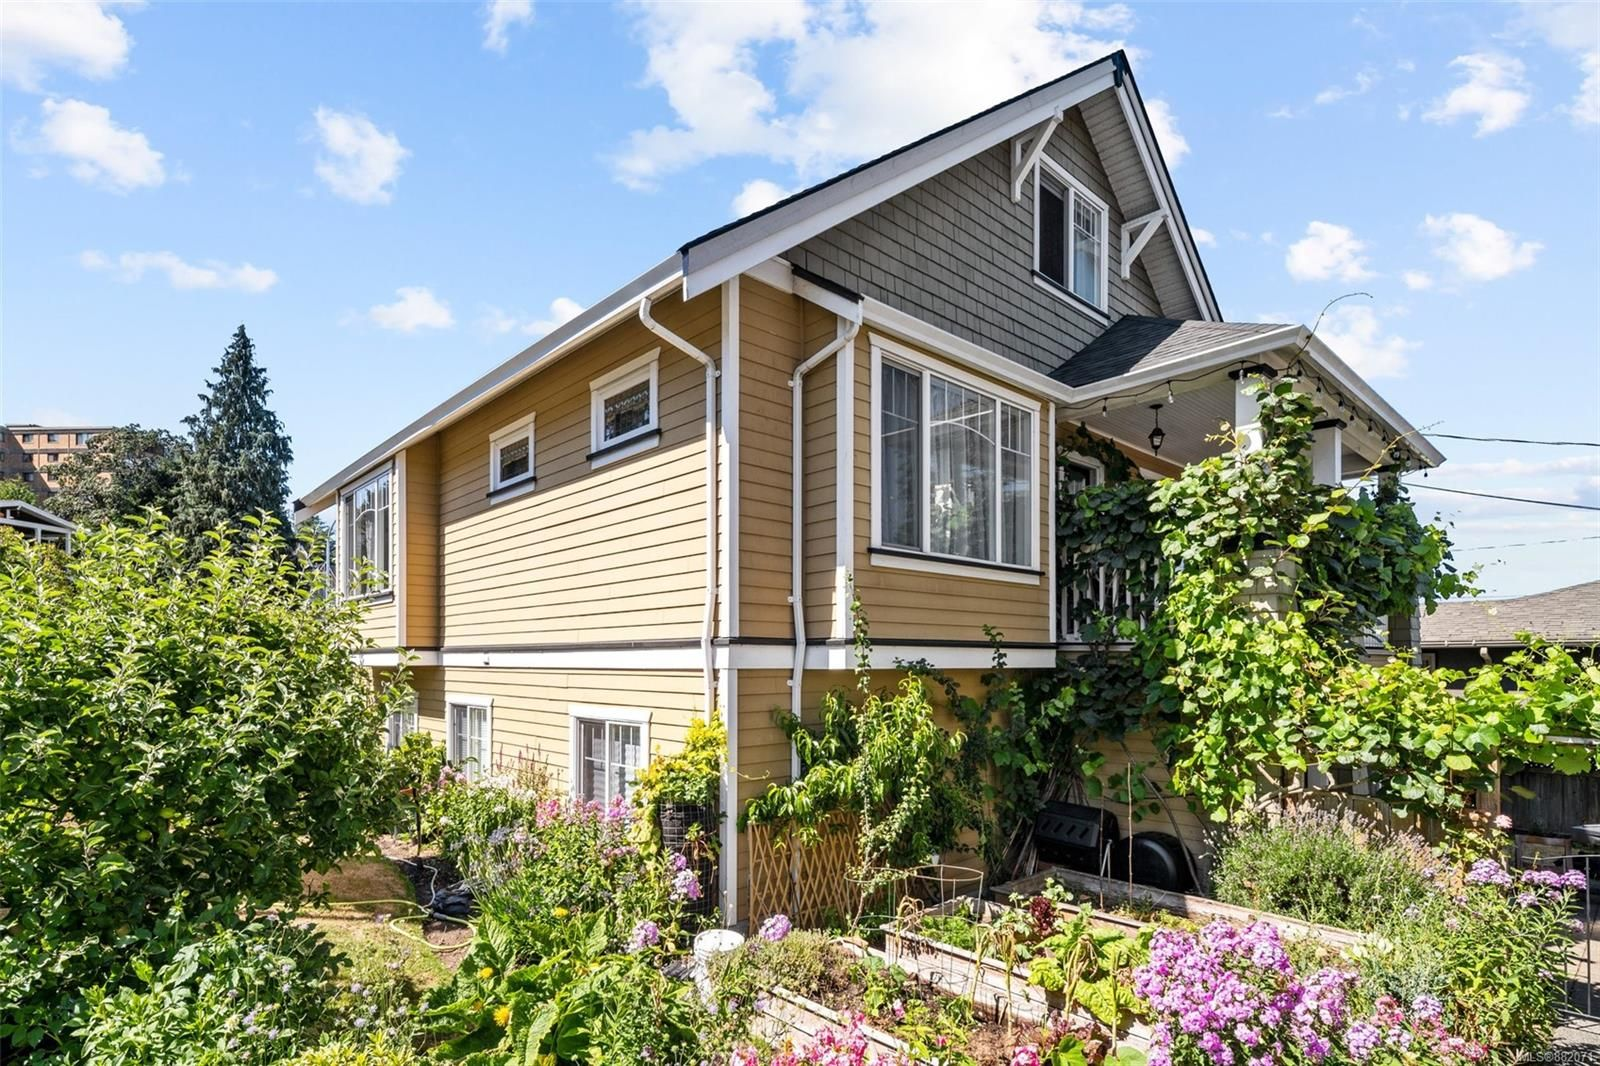 Main Photo: 3 2910 Hipwood Lane in : Vi Mayfair Row/Townhouse for sale (Victoria)  : MLS®# 882071